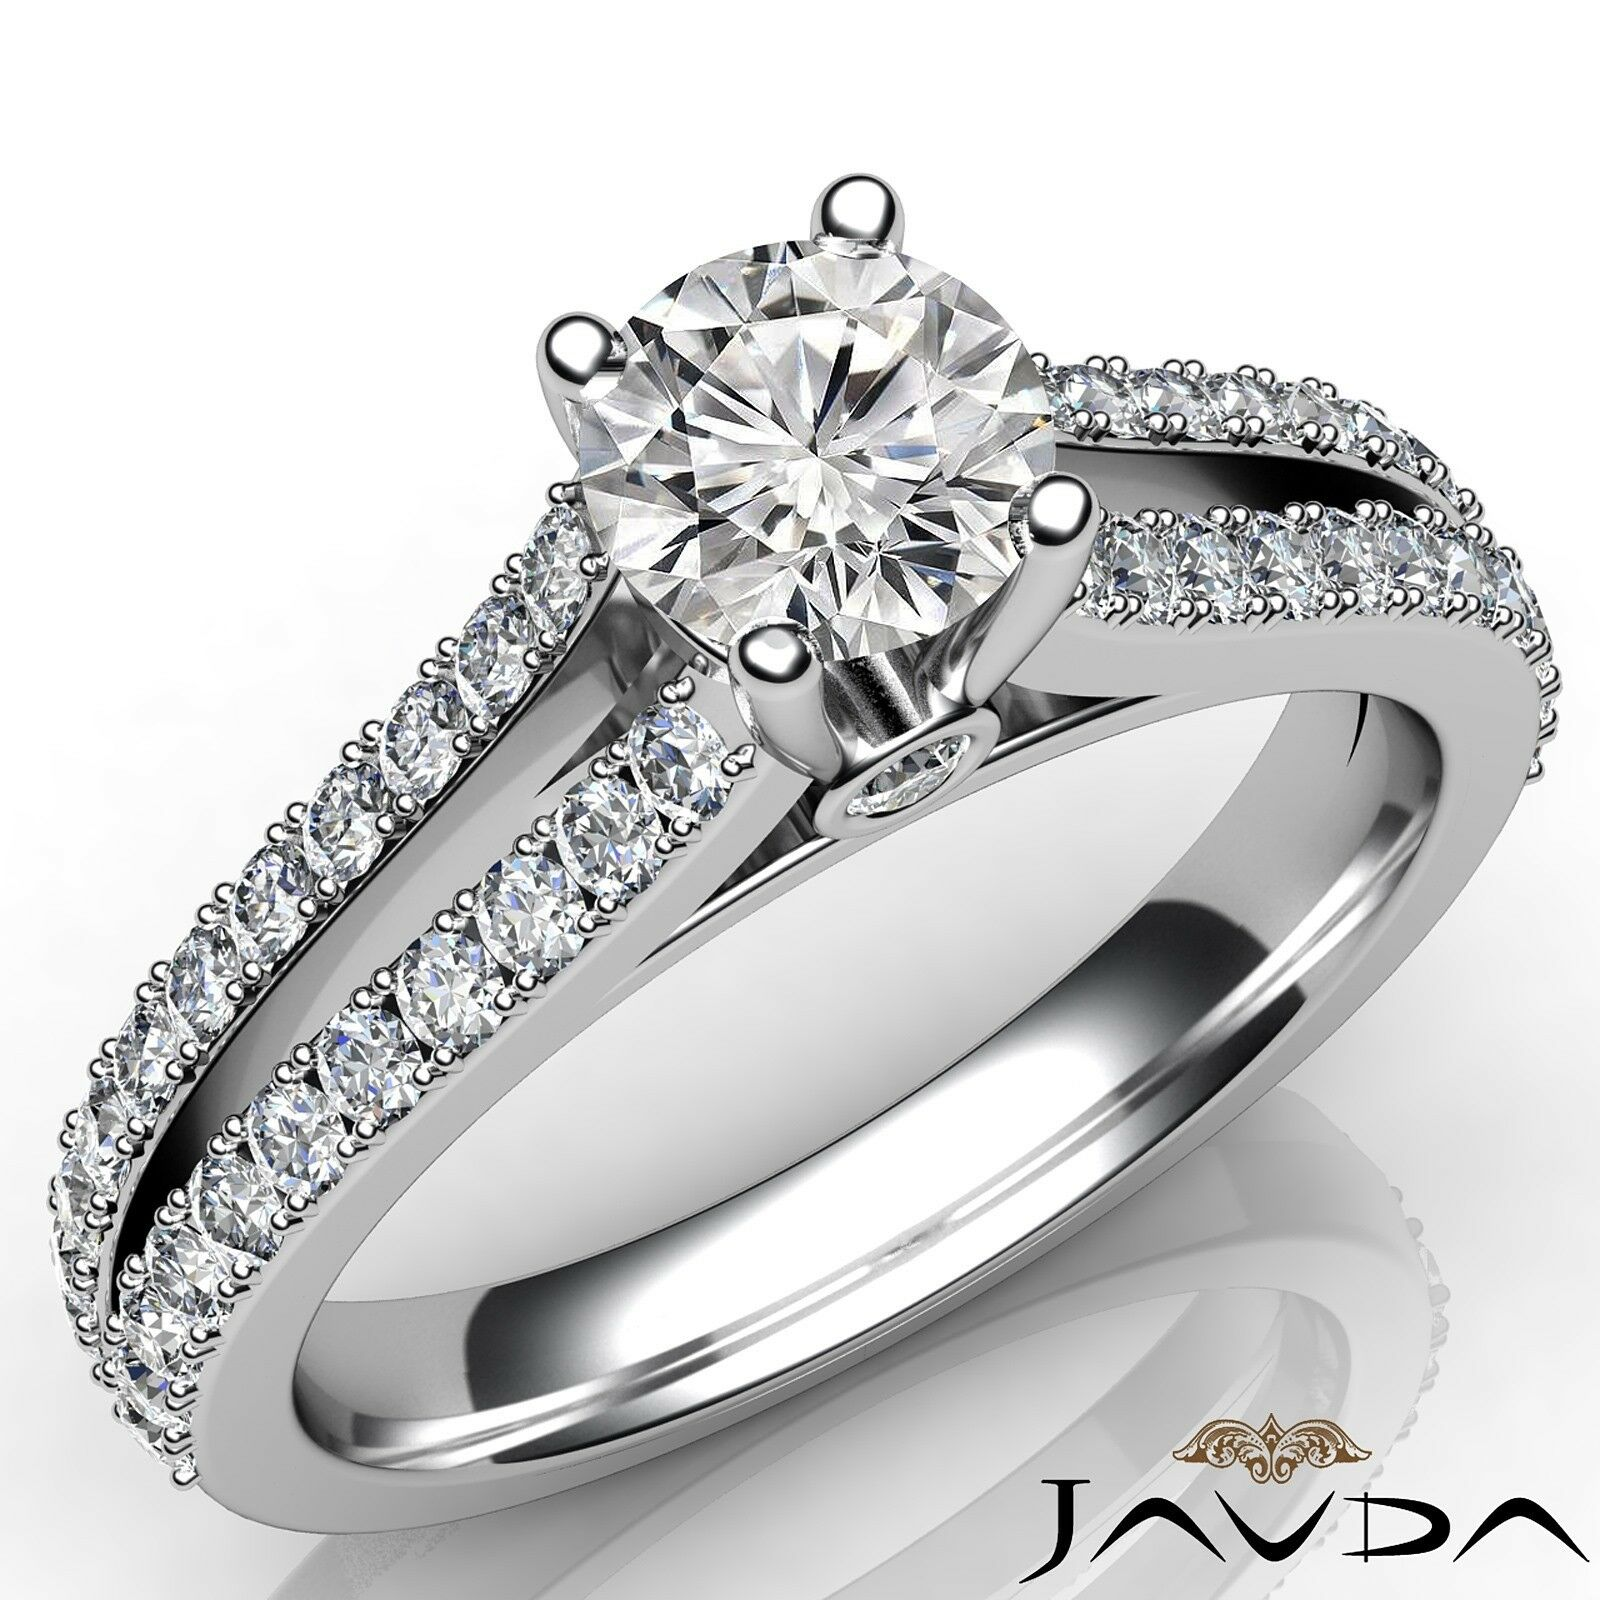 1.15ctw Split Prong Round Diamond Engagement Ring GIA H-VS2 White Gold Women New